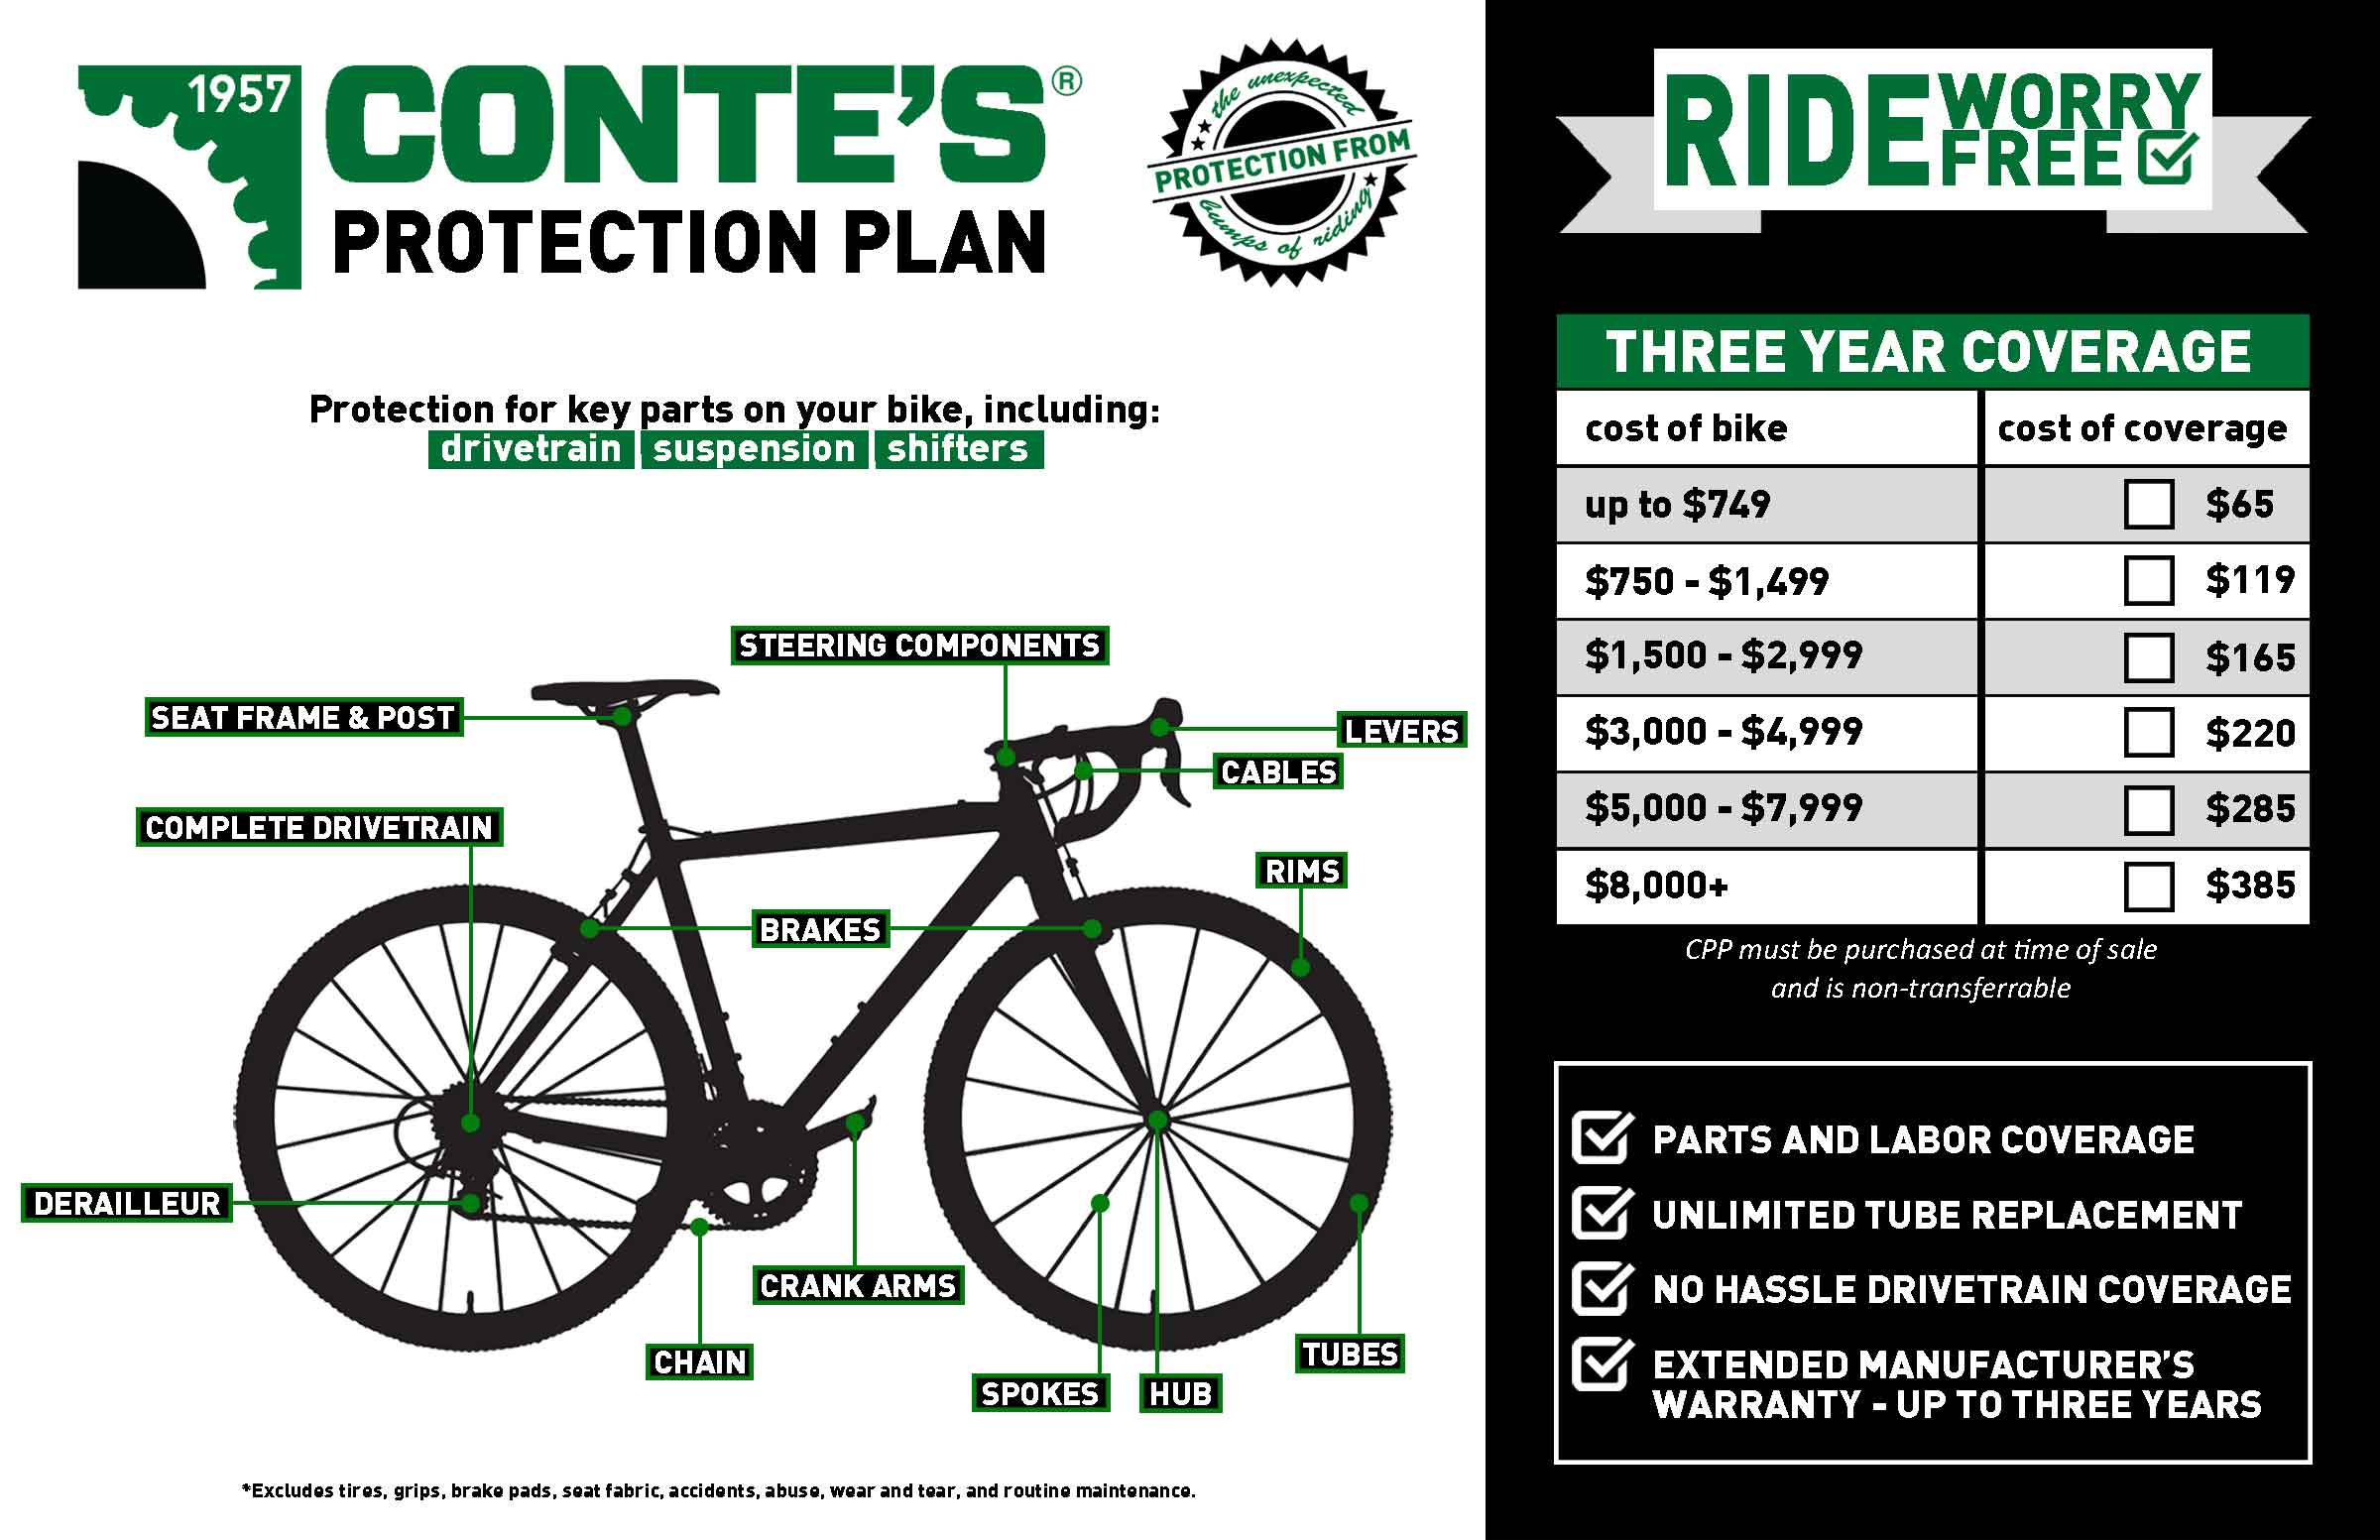 Conte's + Protection Plan